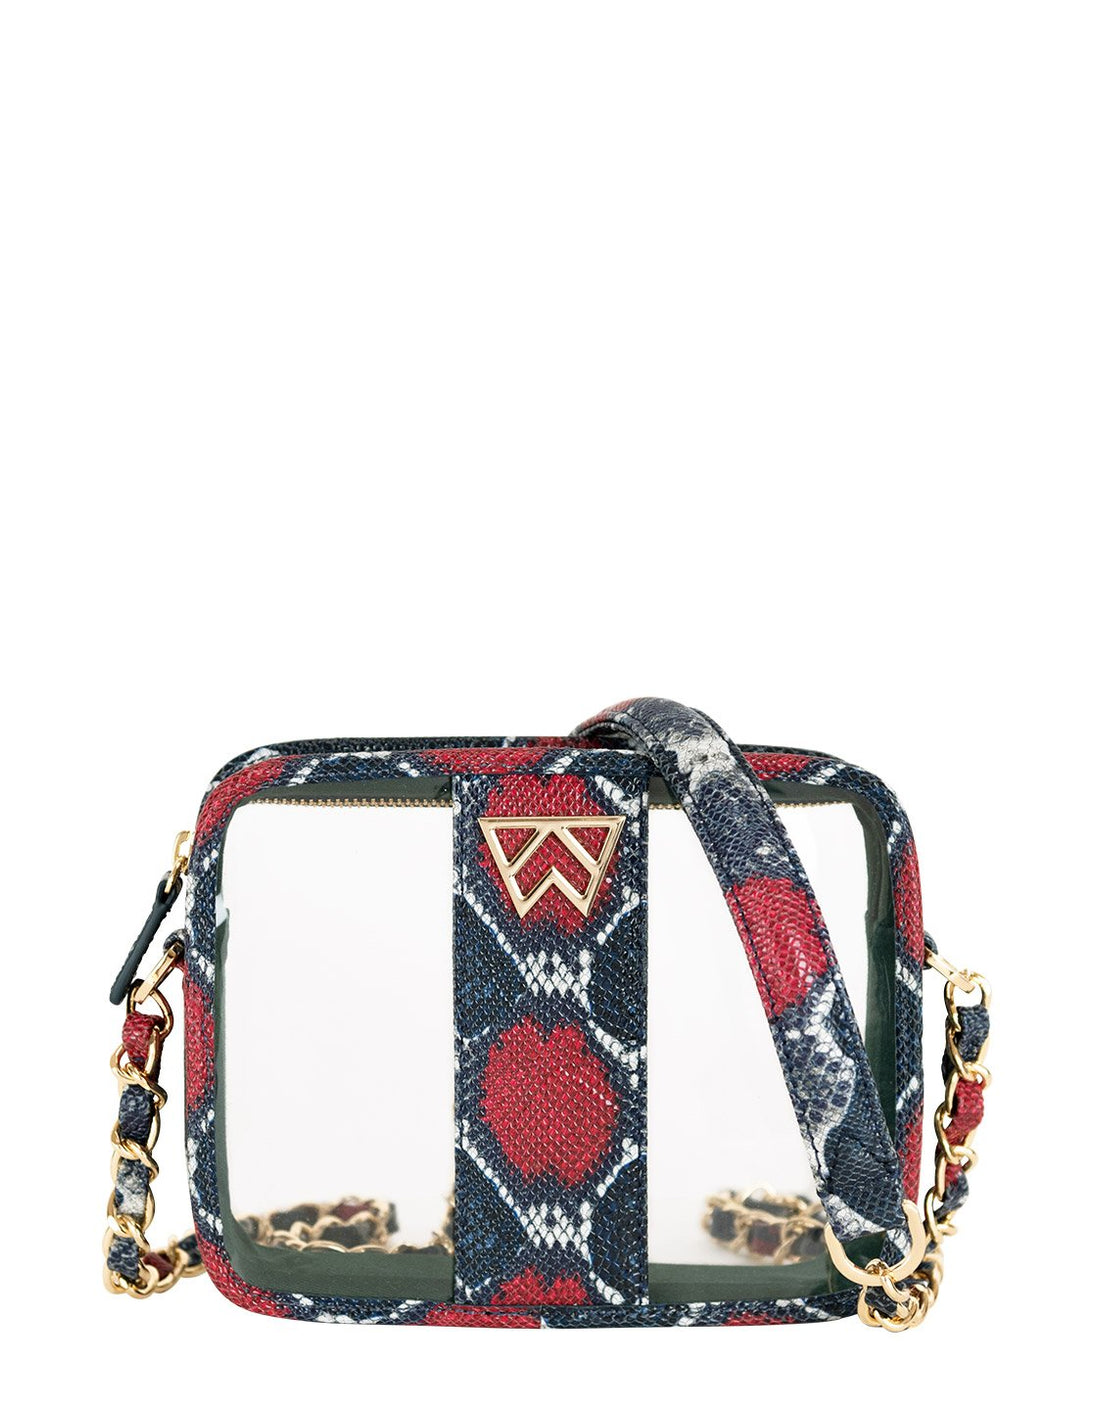 Clear Bundle (with Pouch) in Red/Navy